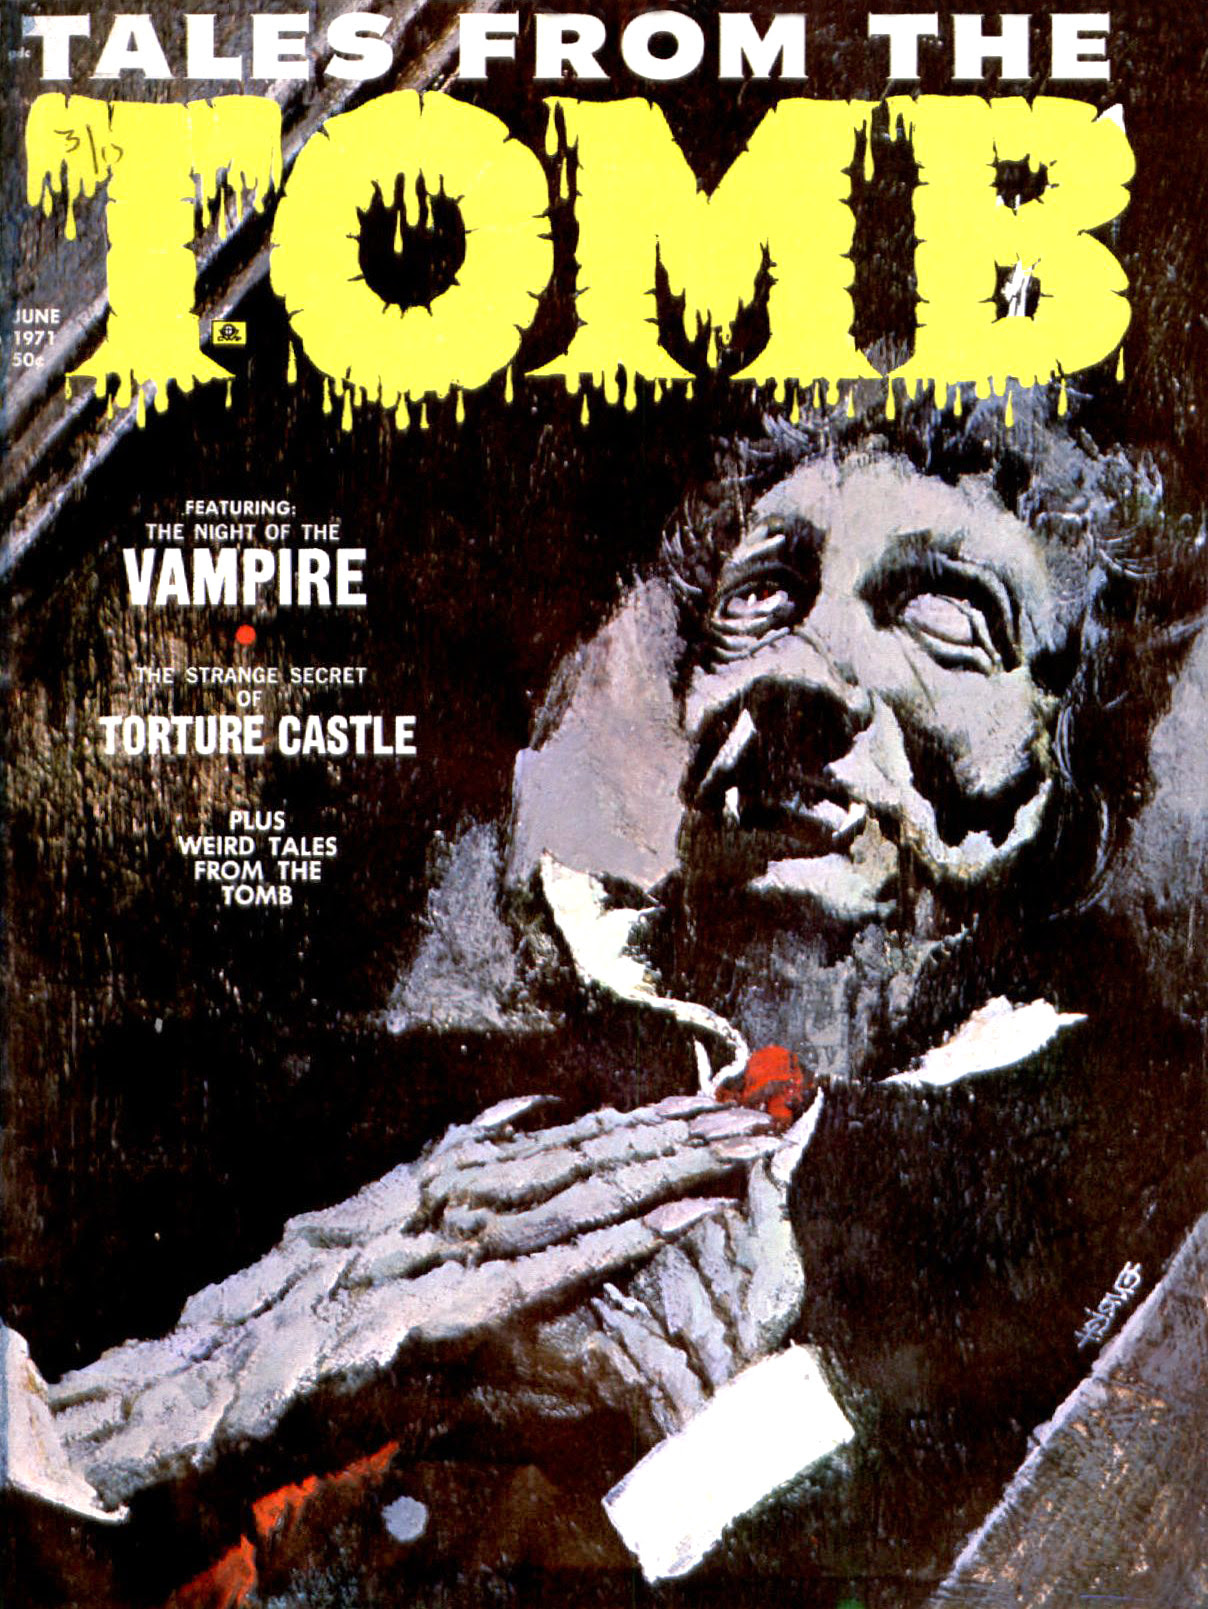 Tales from the Tomb - Vol. 3 #3 (Eerie Publications, 1971)